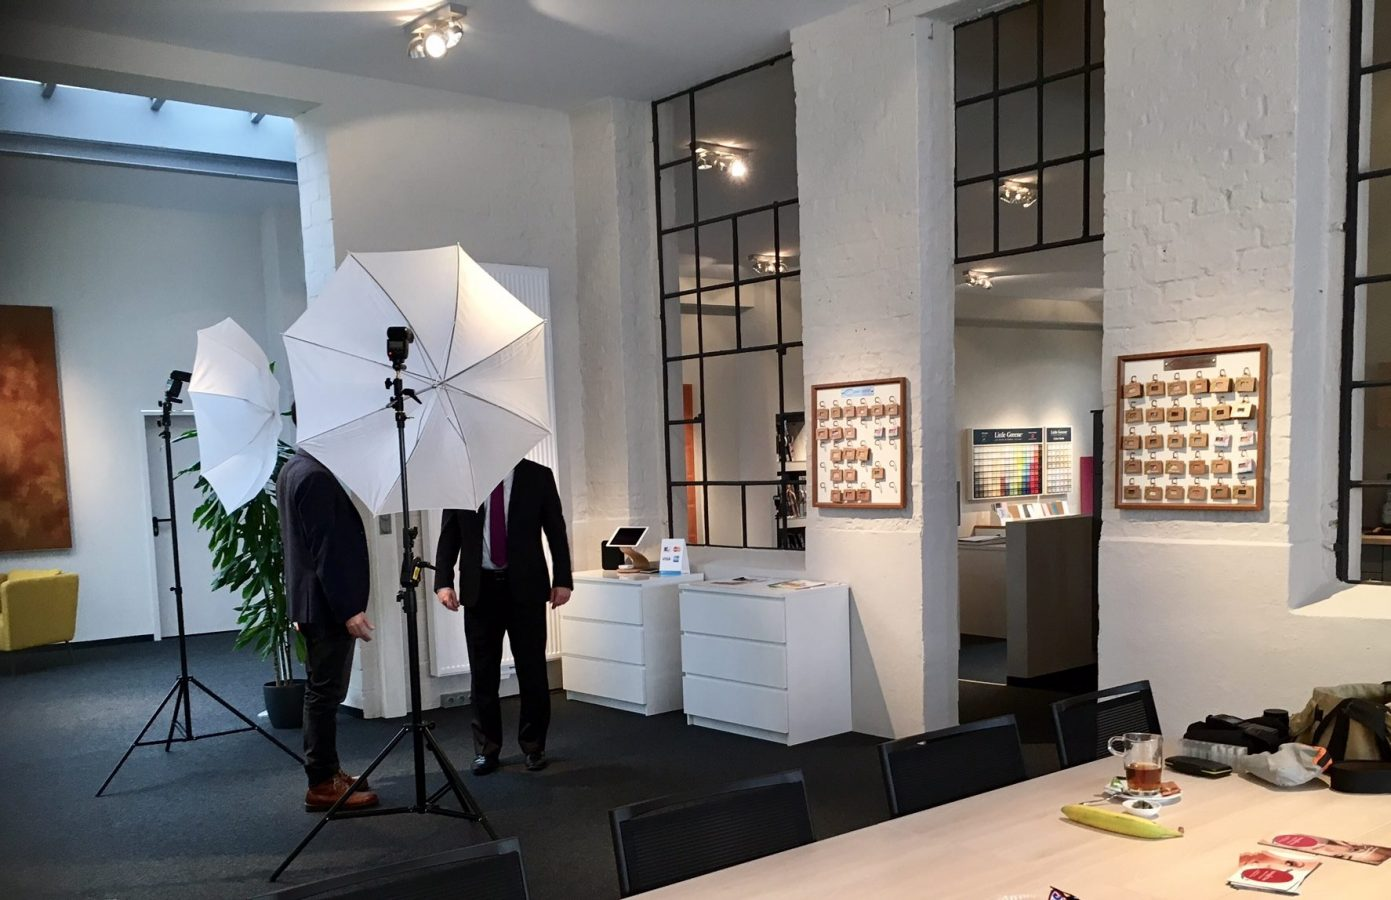 Business-Fotografie in Hamm bei Honig&Blau